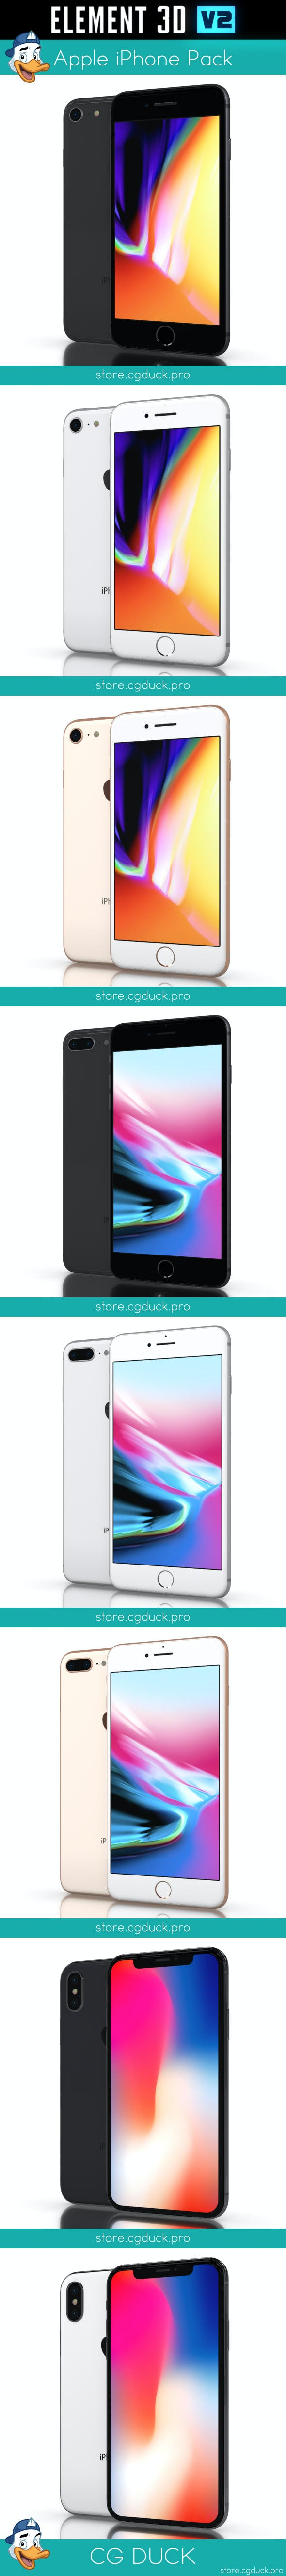 Apple iPhones Pack for Element 3D - 3DOcean Item for Sale